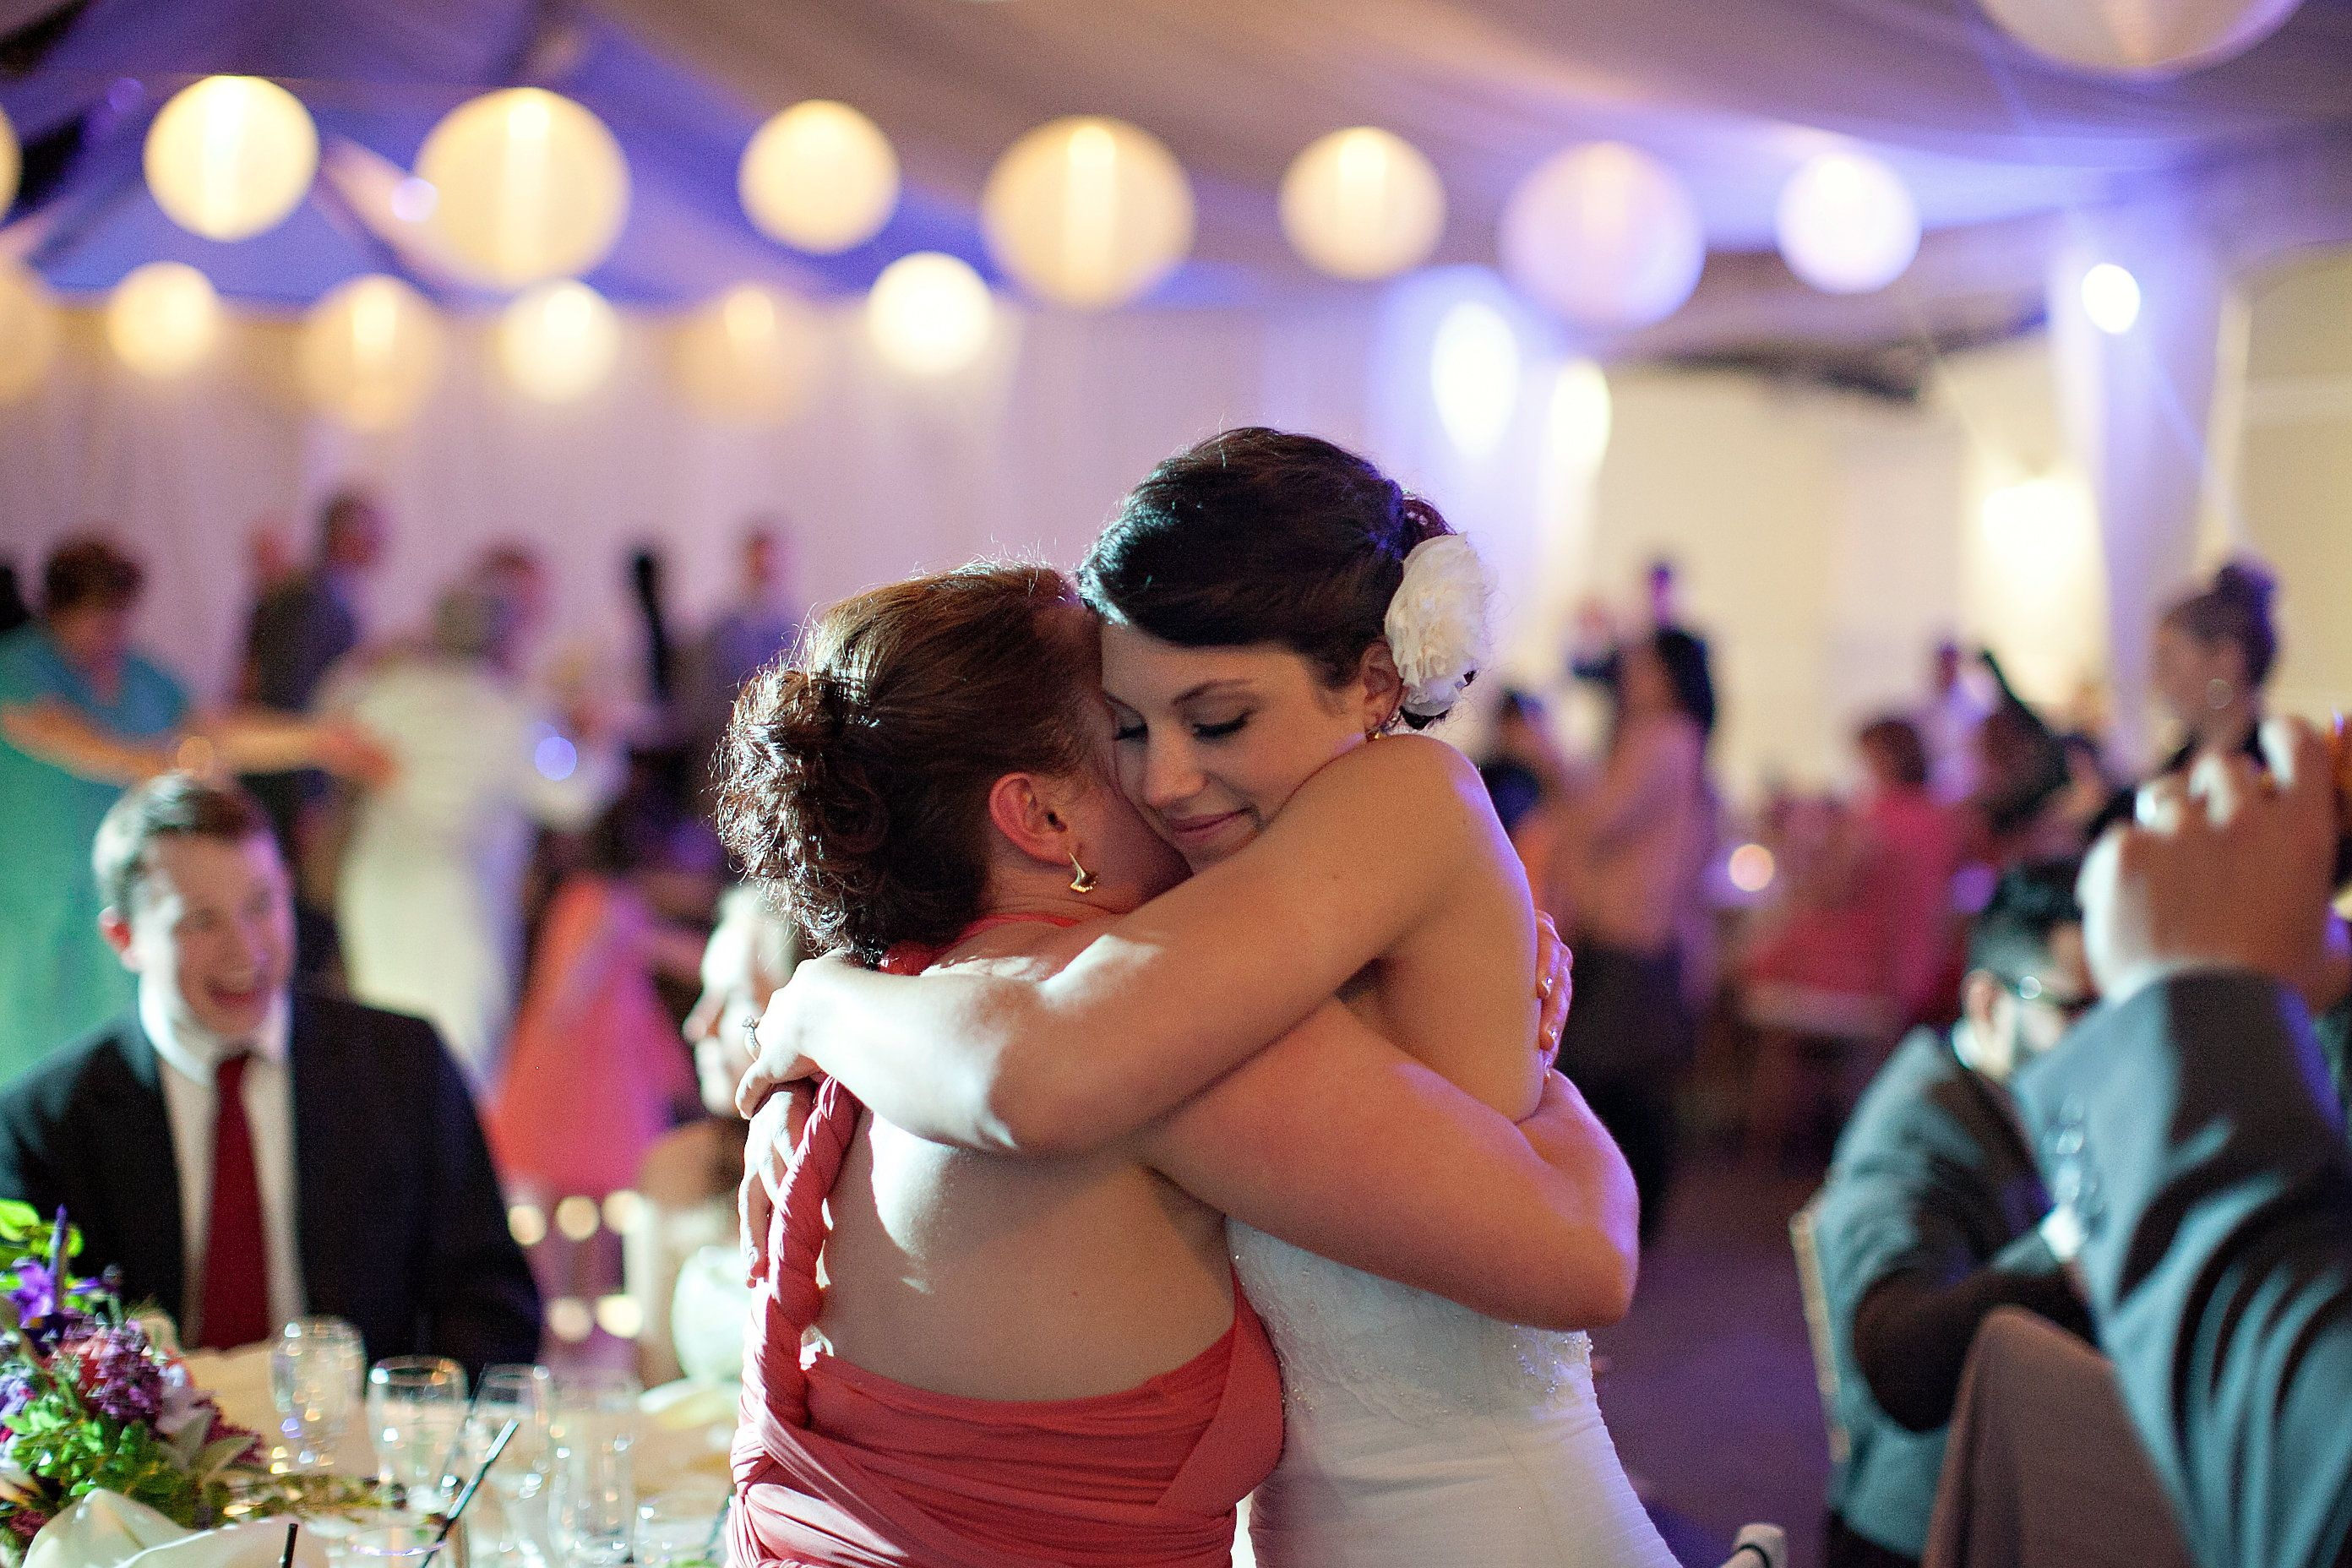 Special moment captured during the reception #gardentent #parktavern #love